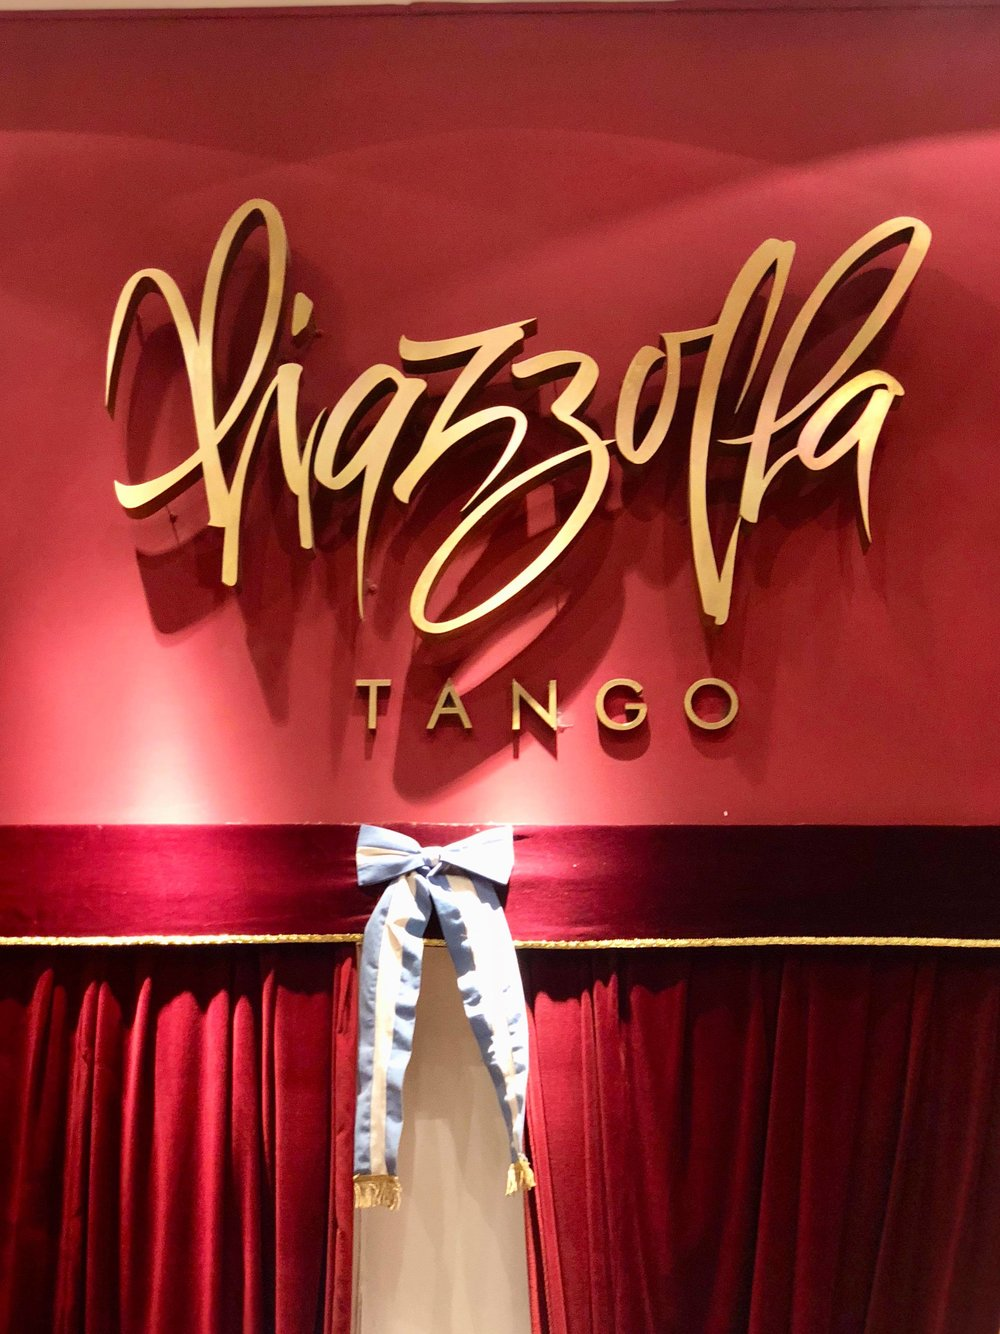 - Though the clientele skews heavily towards tourists, Piazzolla offered a wonderful show and better-than-expected set menu dinner that came with the evening.